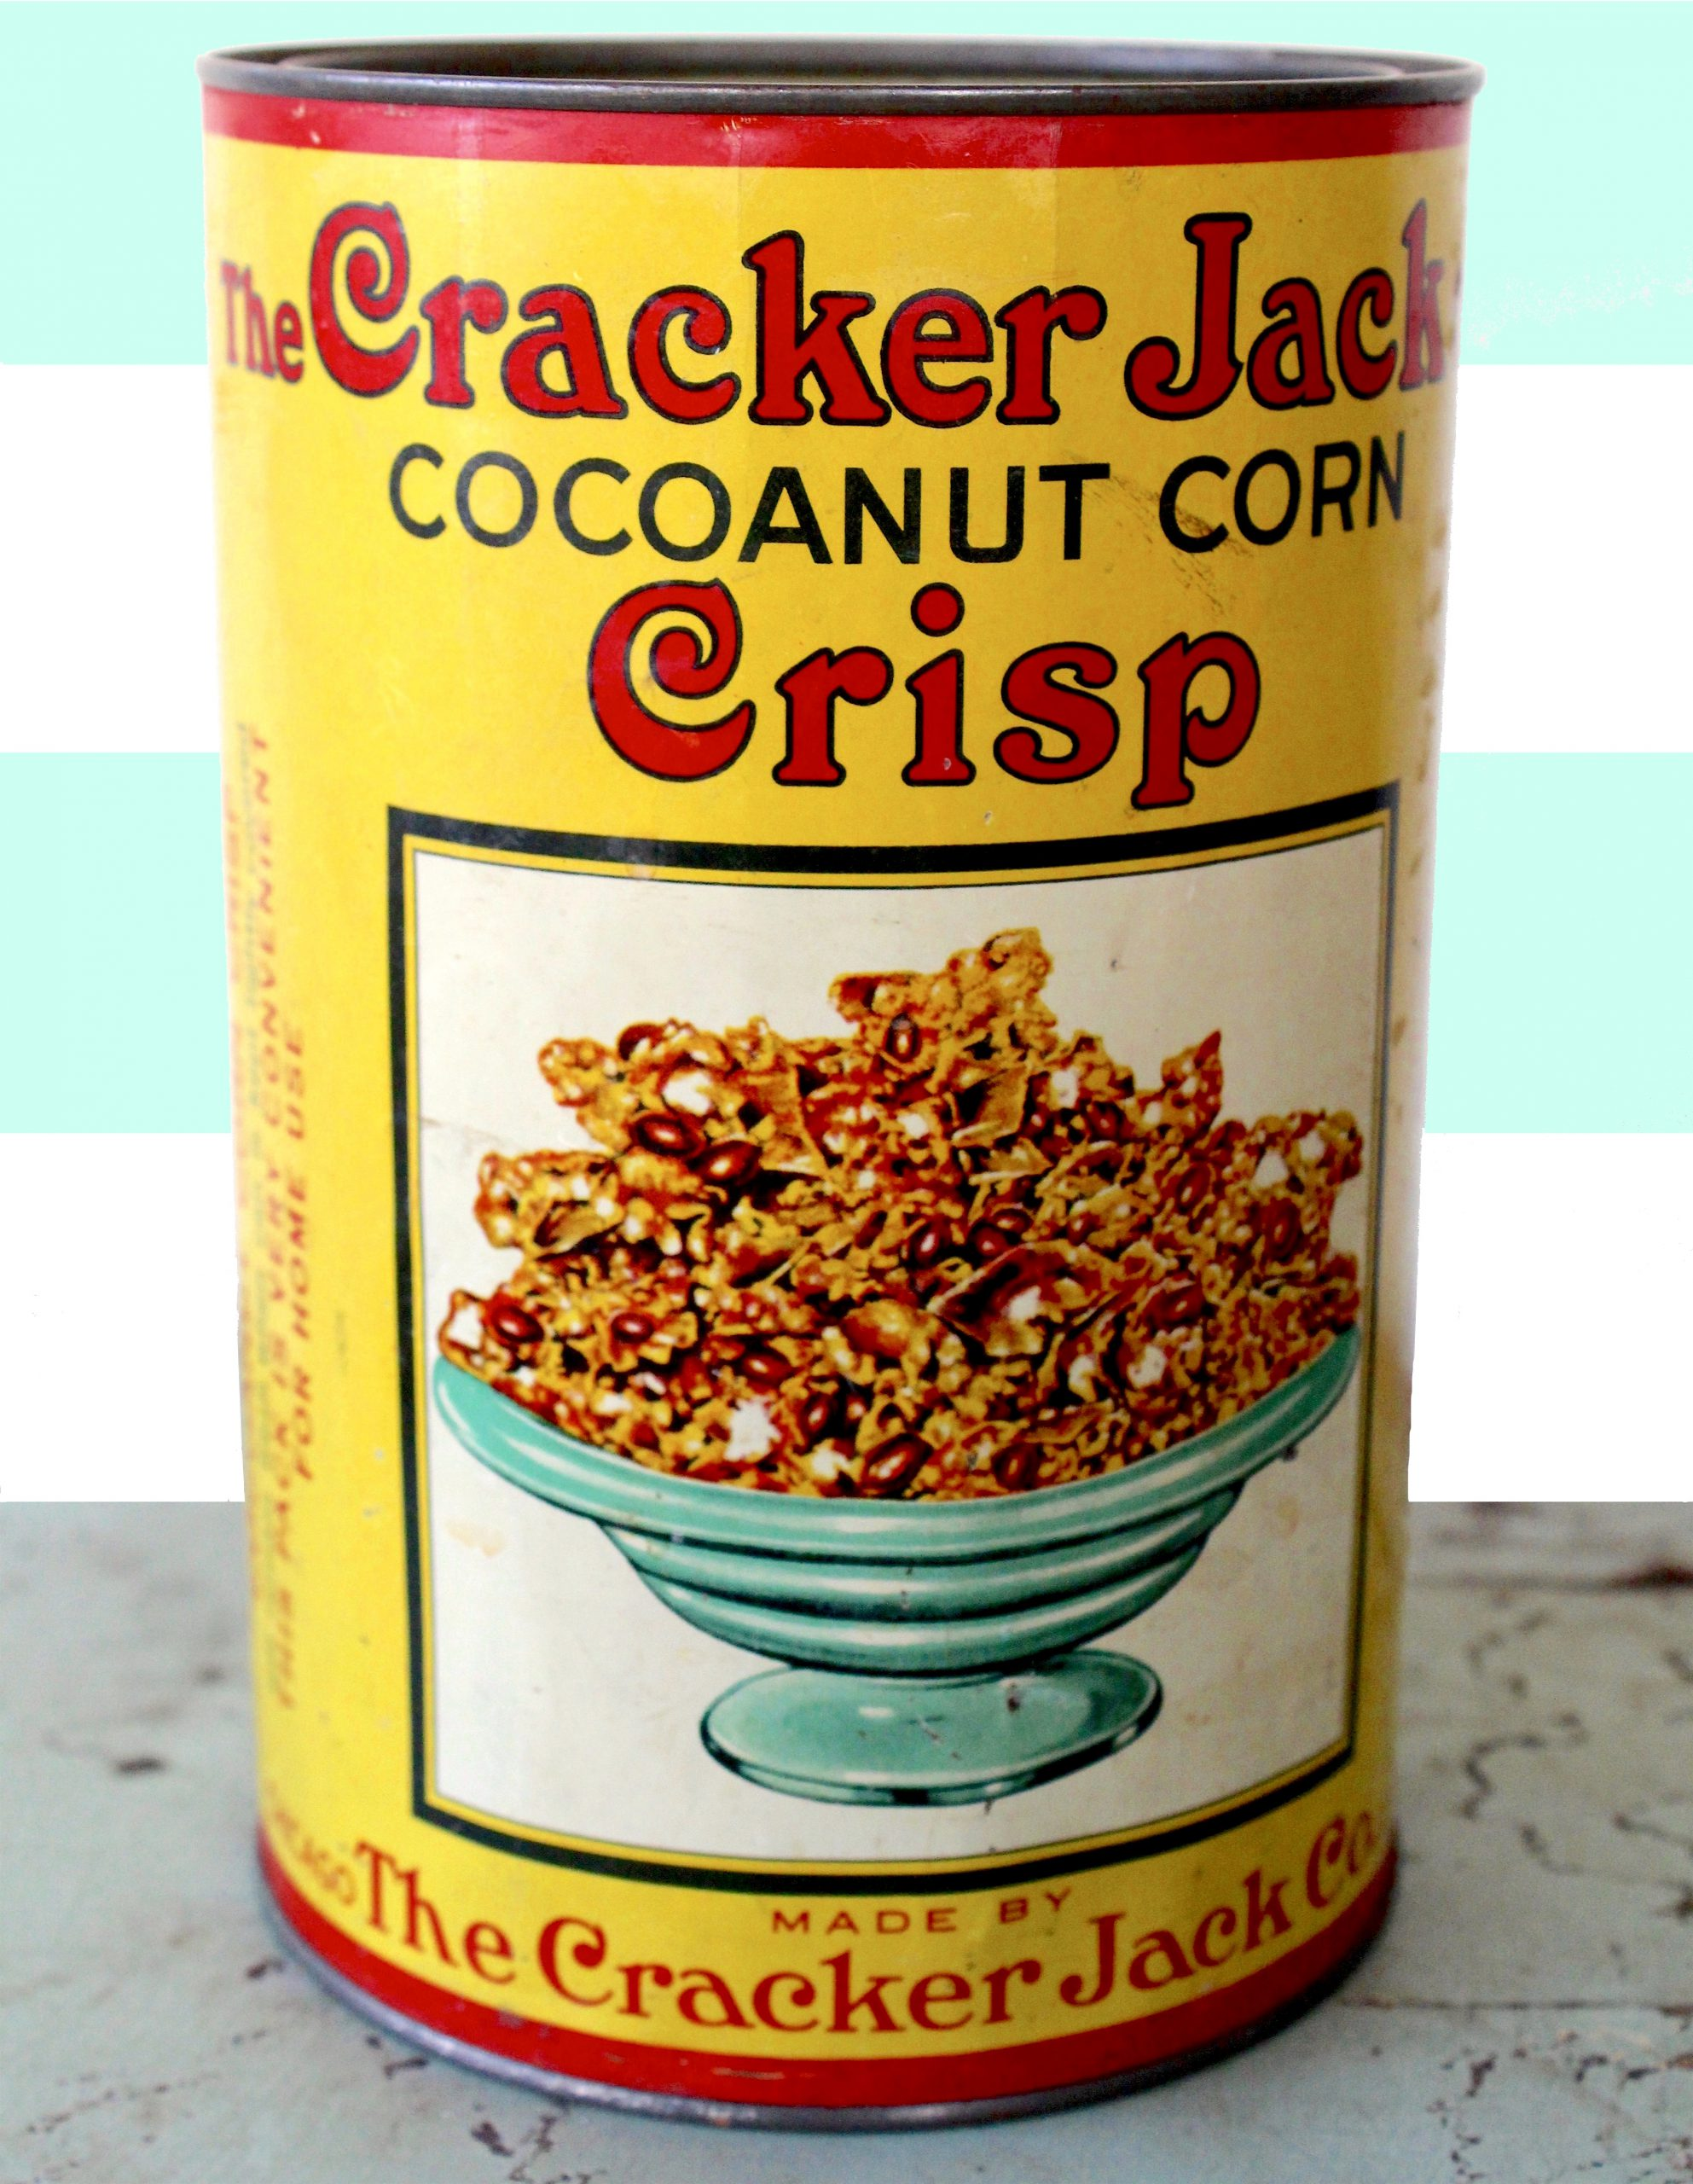 The Cracker Jack Co., est. 1871